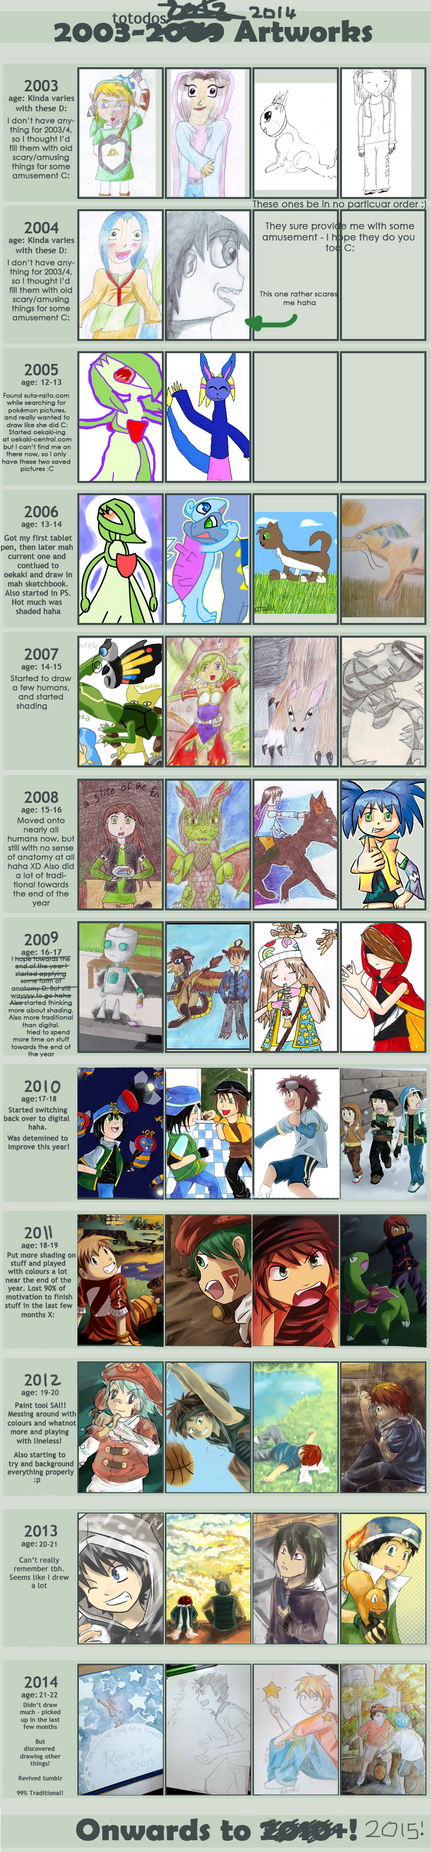 2003-2014 improvement meme thing by totodos